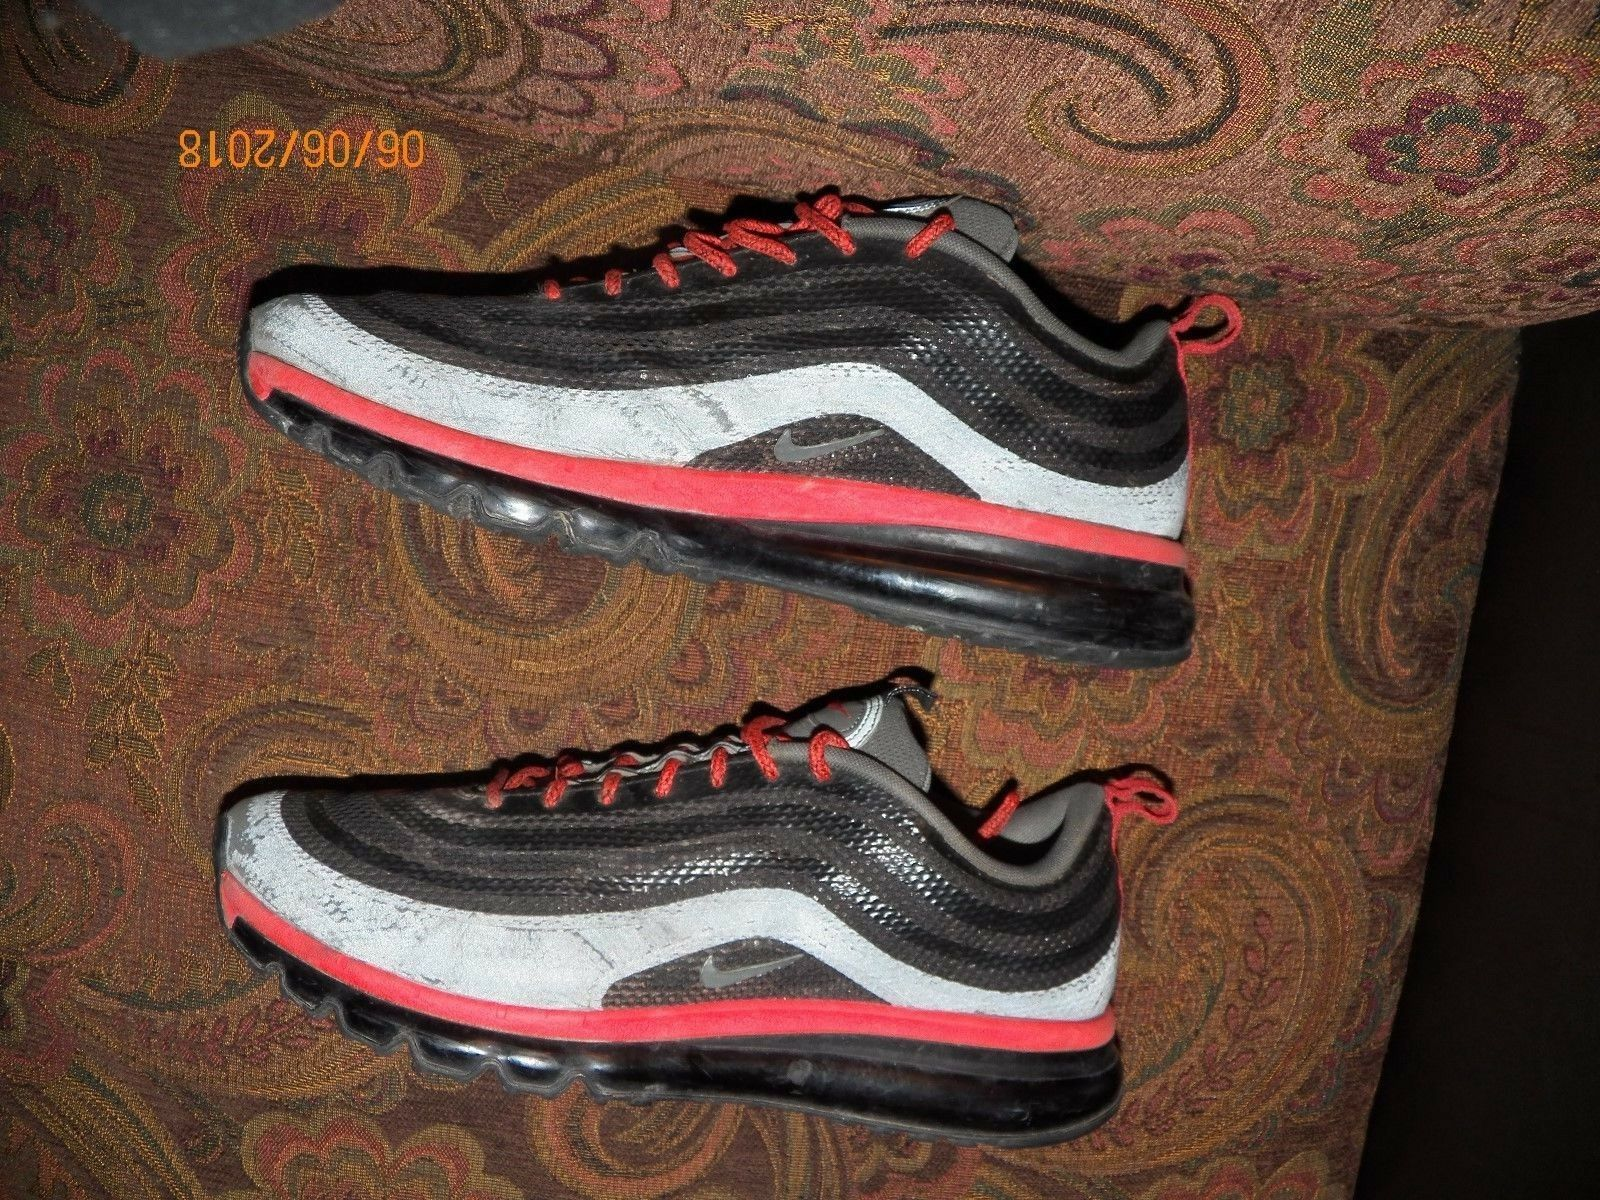 NIKE AIR MAX Price reduction HYP SNEAKERS Red/Grey/Black  Price reduction US MEN'S SIZE 12 Seasonal clearance sale